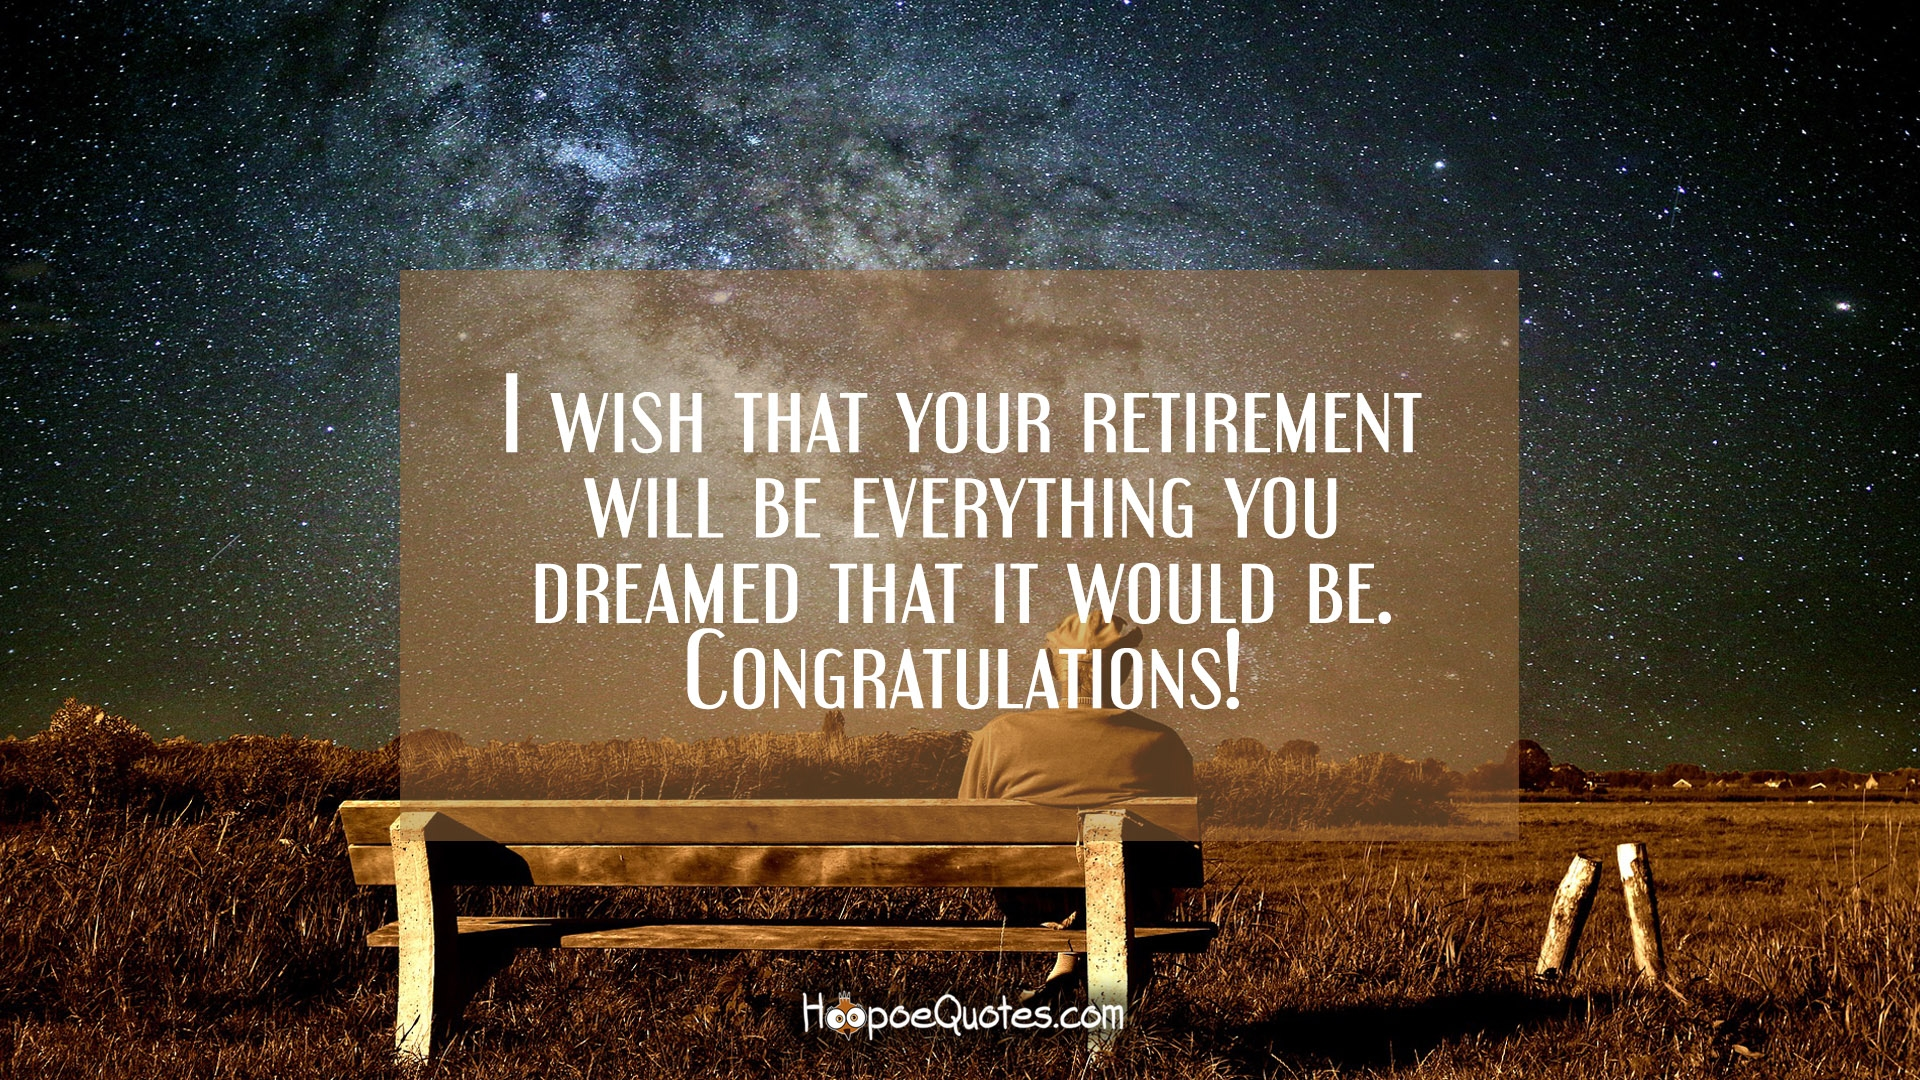 I Wish That Your Retirement Is Everything You Dreamed That